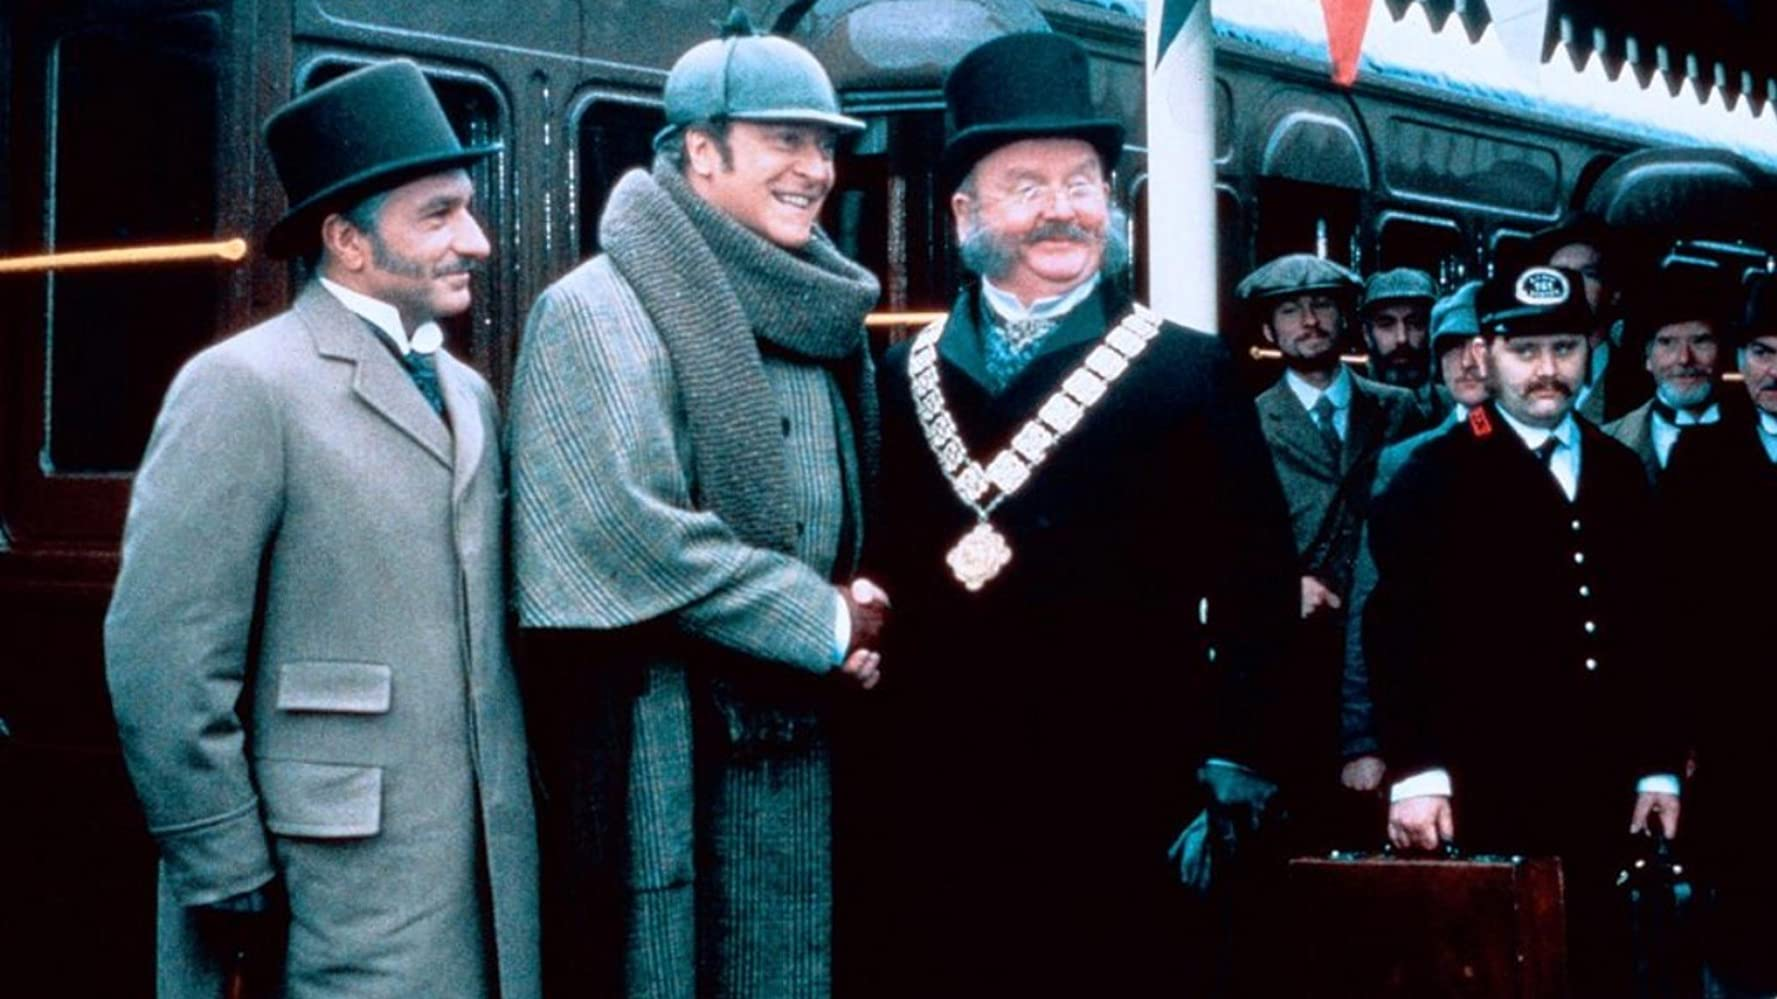 Michael Caine, Ben Kingsley, and Harold Innocent in Without a Clue (1988)